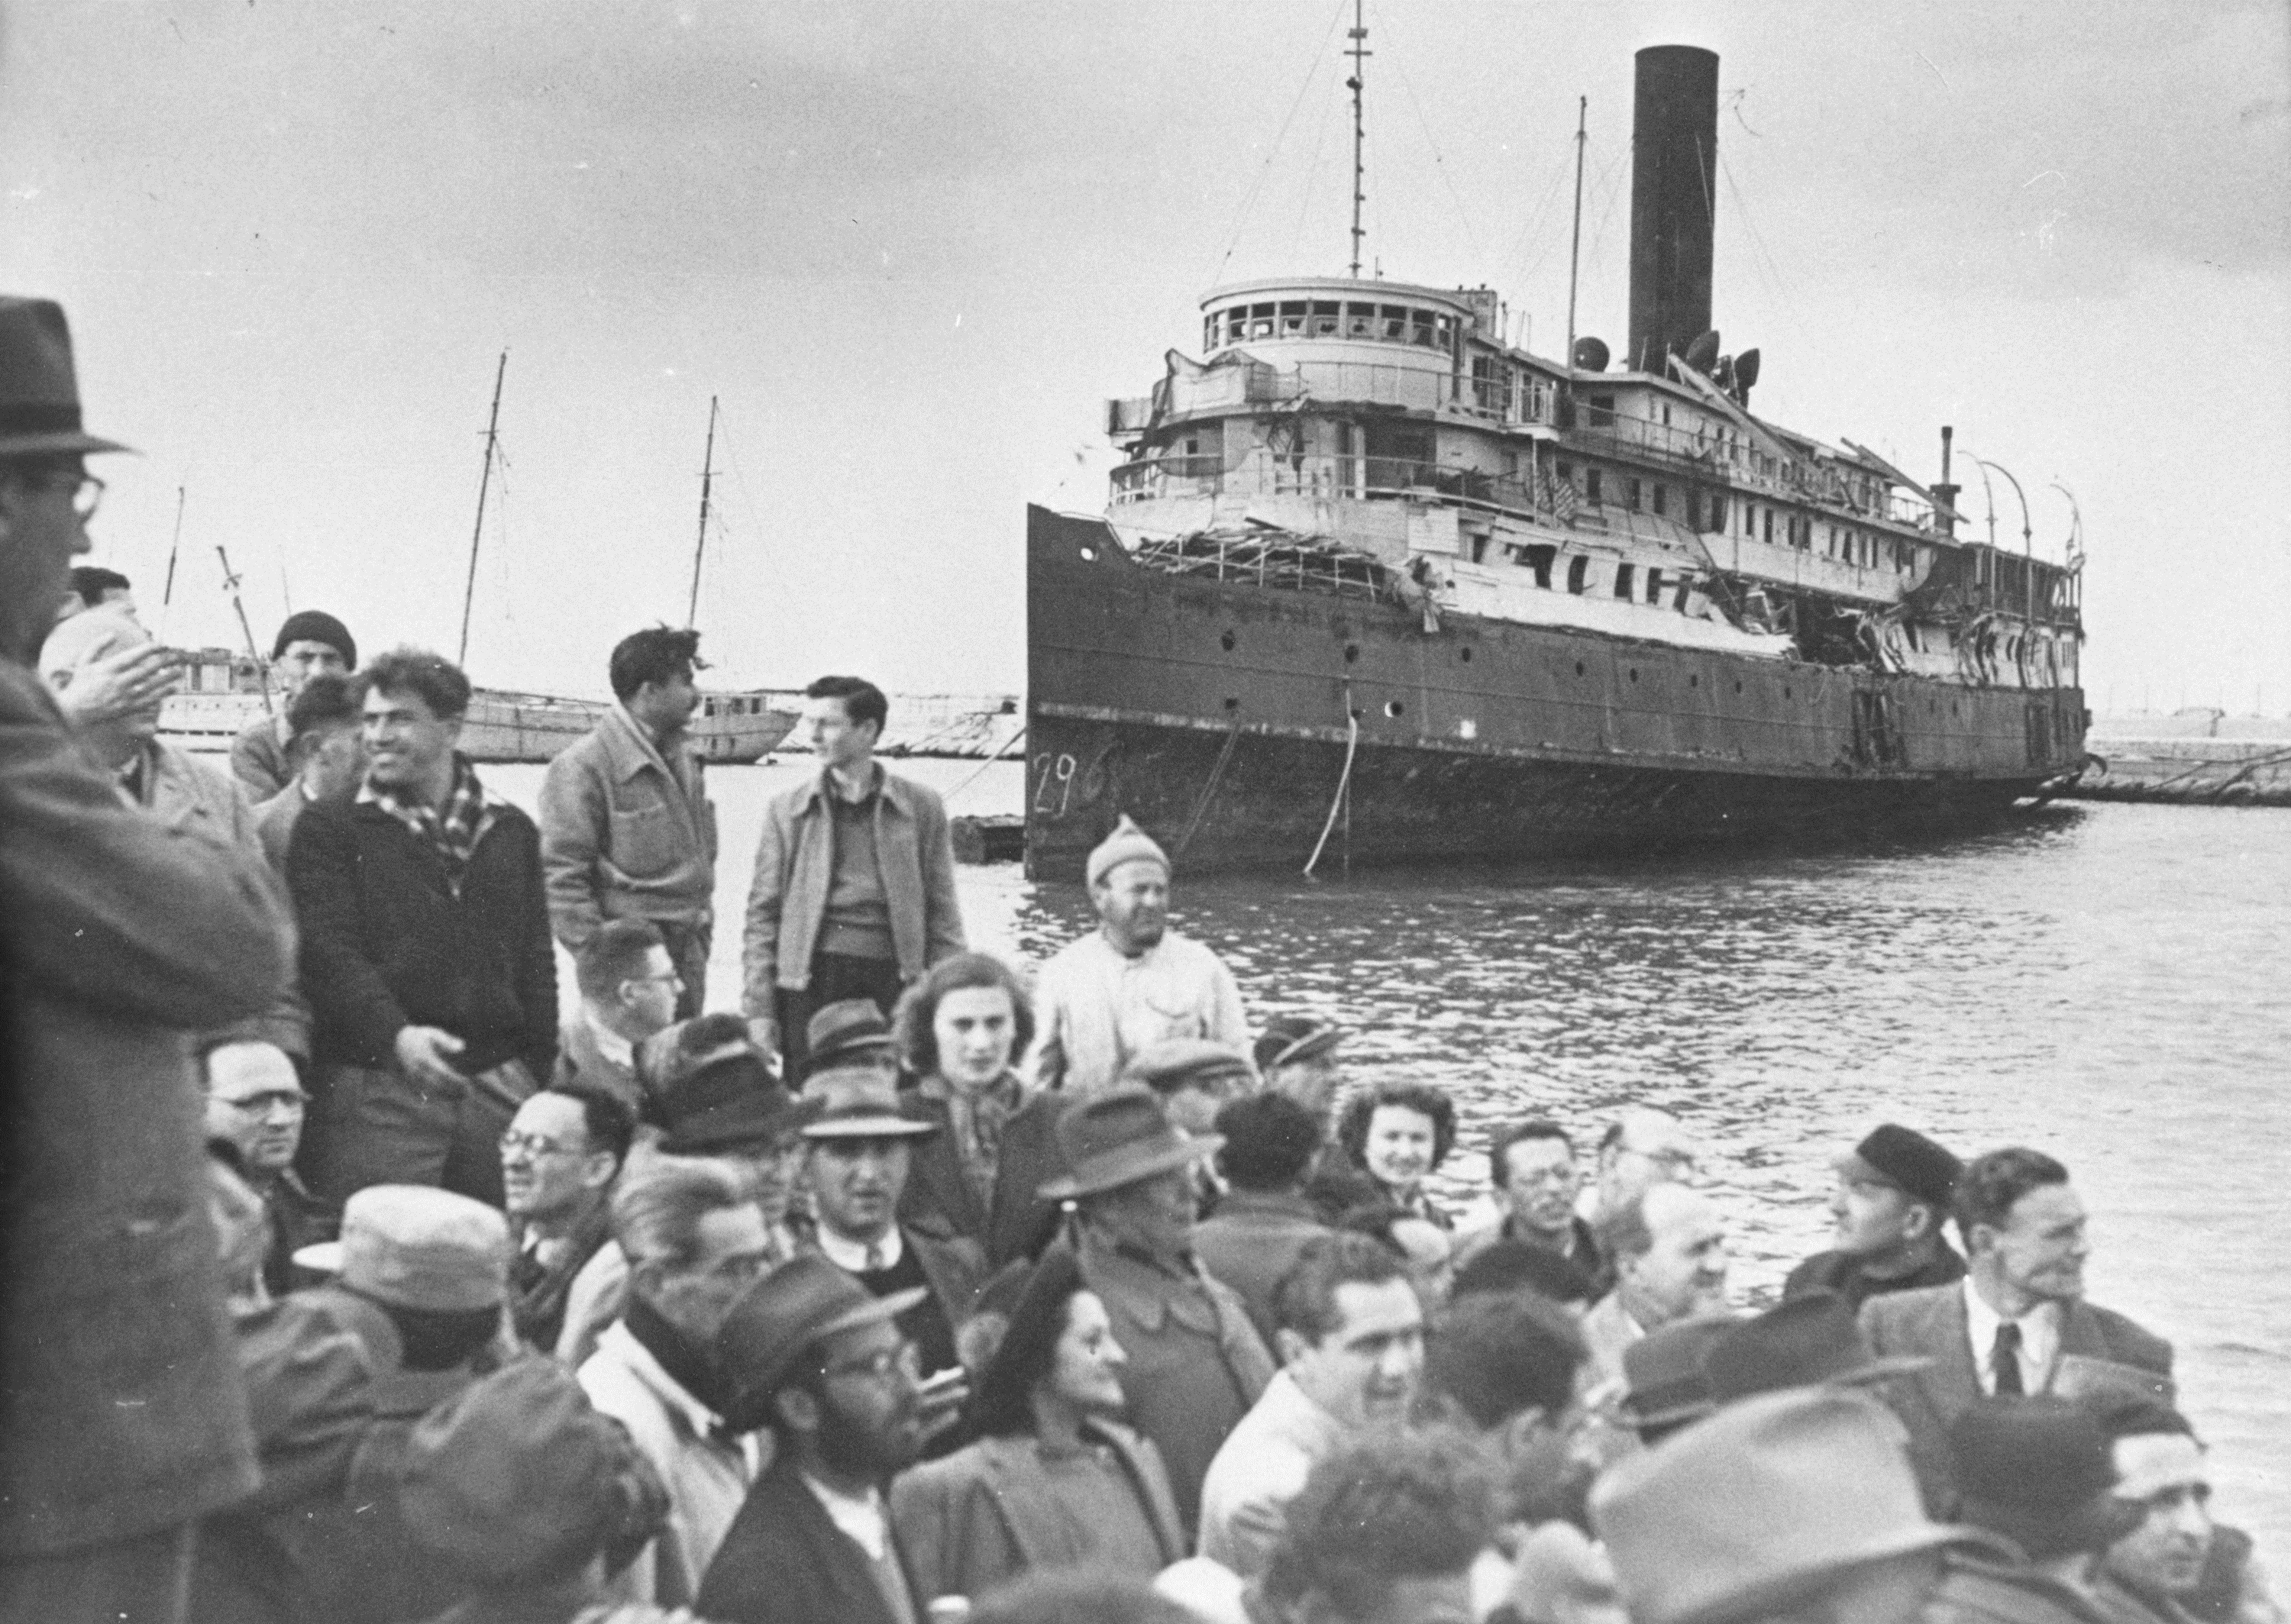 Jewish immigrants arriving in Israel in 1947